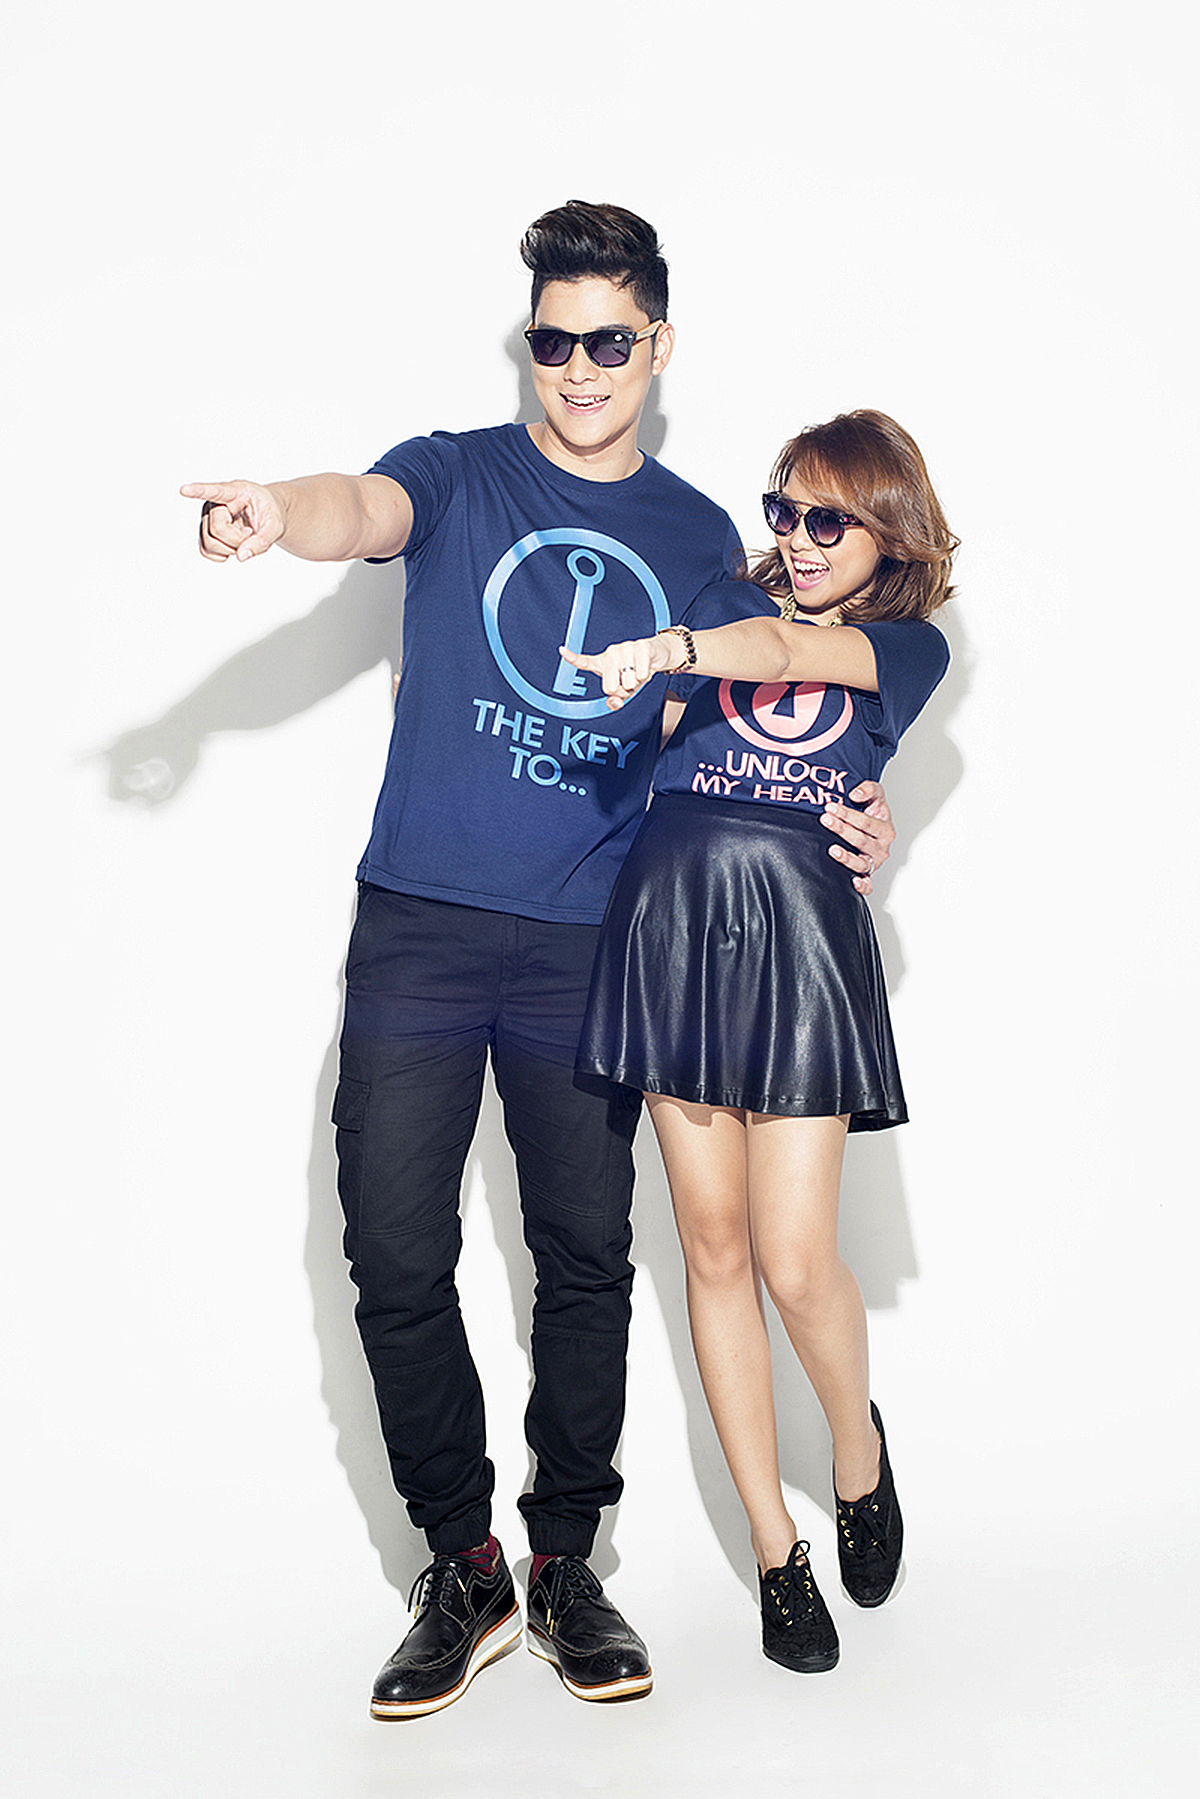 Trice Nagusara and Seph Cham